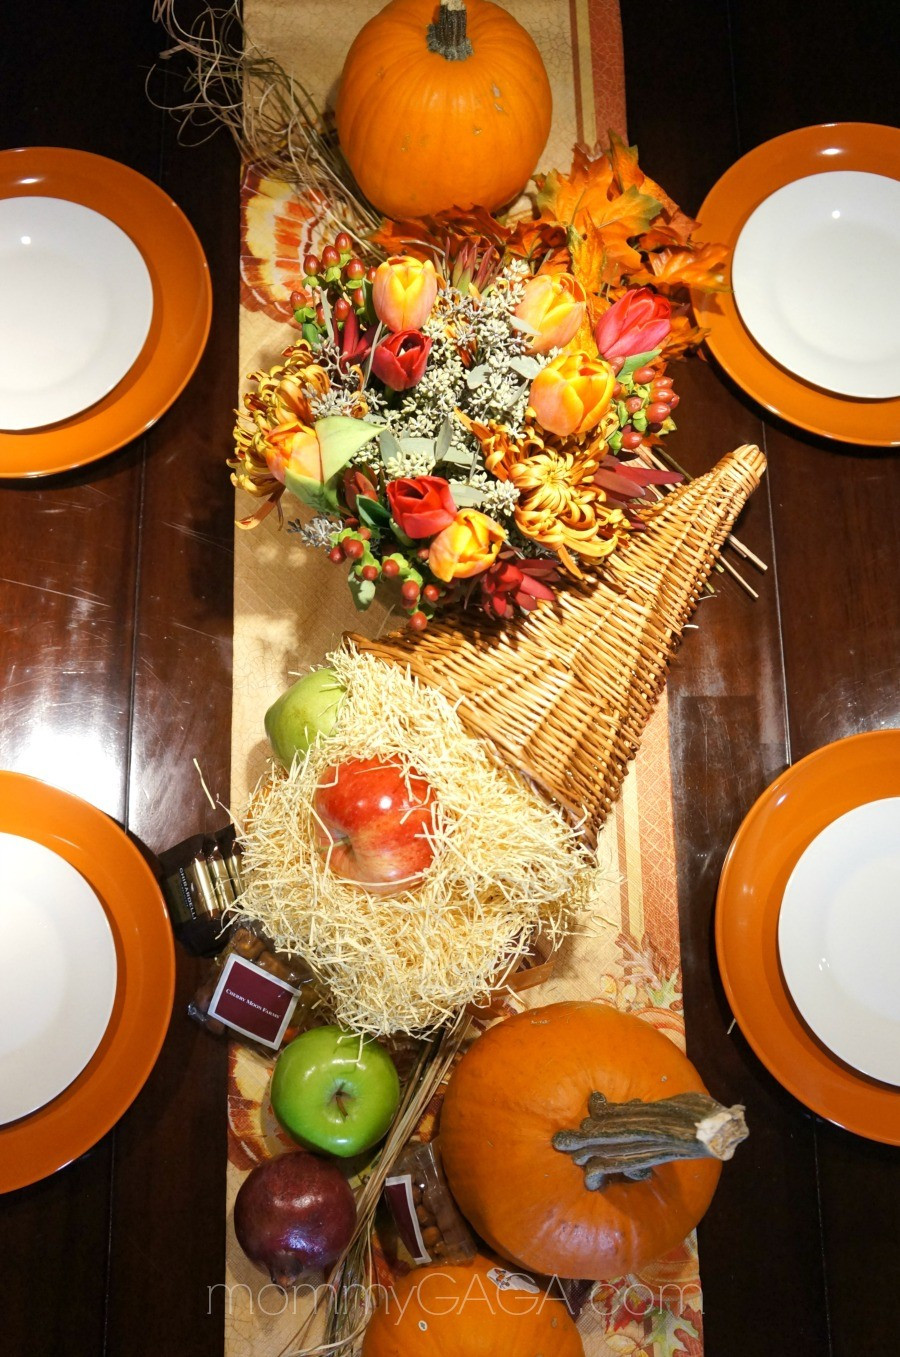 Turkey Designs For Thanksgiving  DIY Thanksgiving Tablescapes Decorating With A Floral